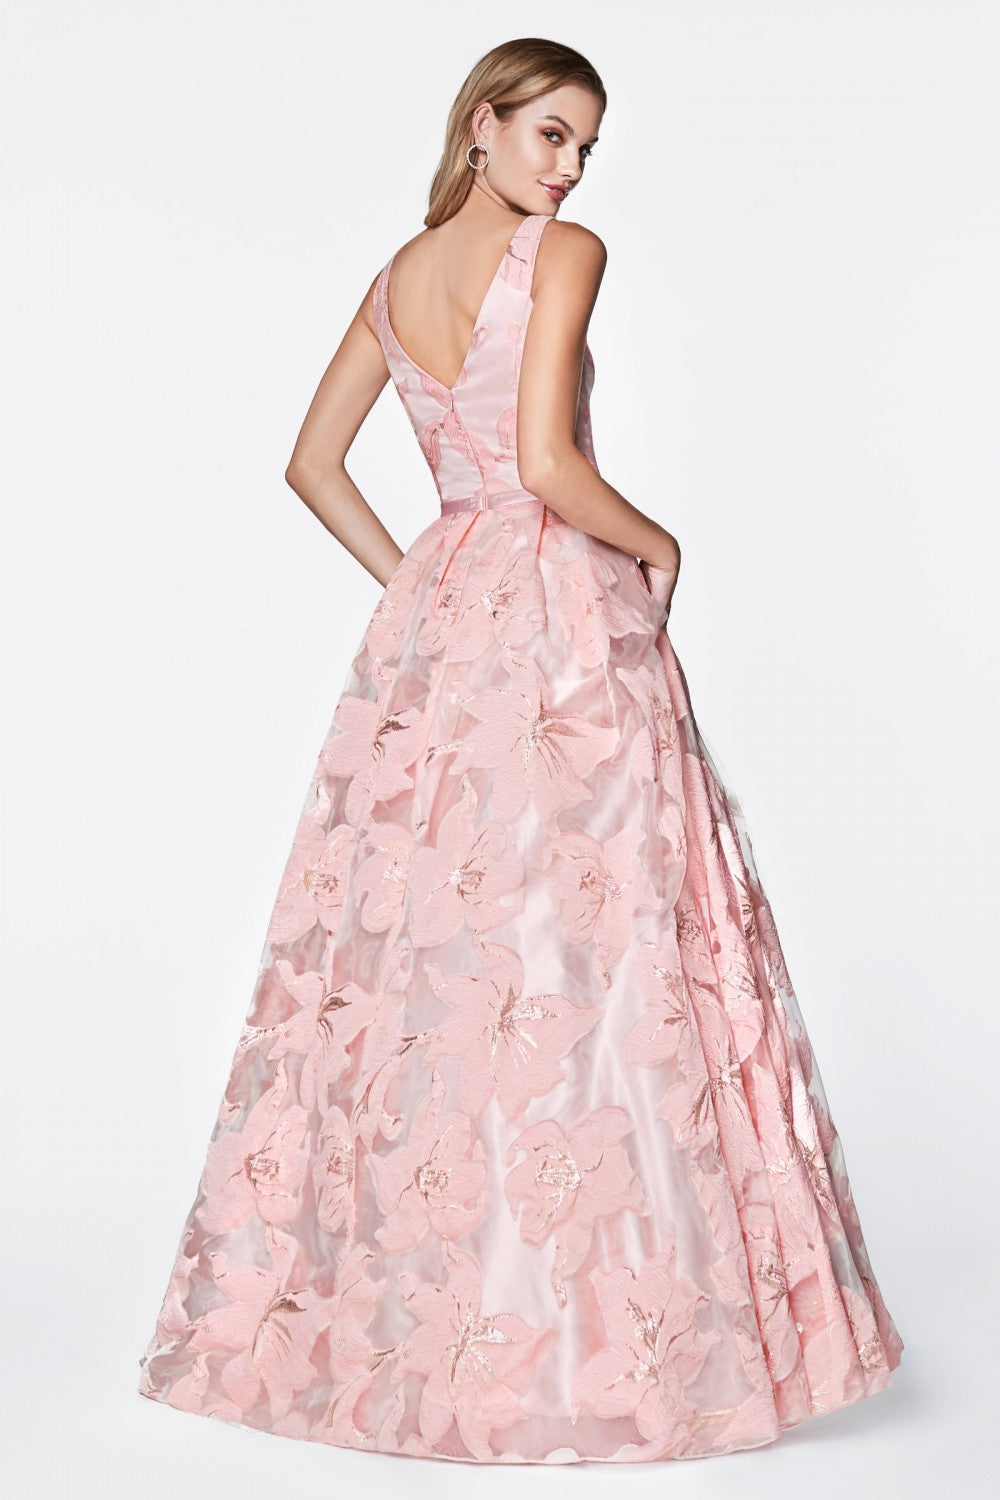 Floral Ball Gown With Deep V-Neckline And Pleated Skirt